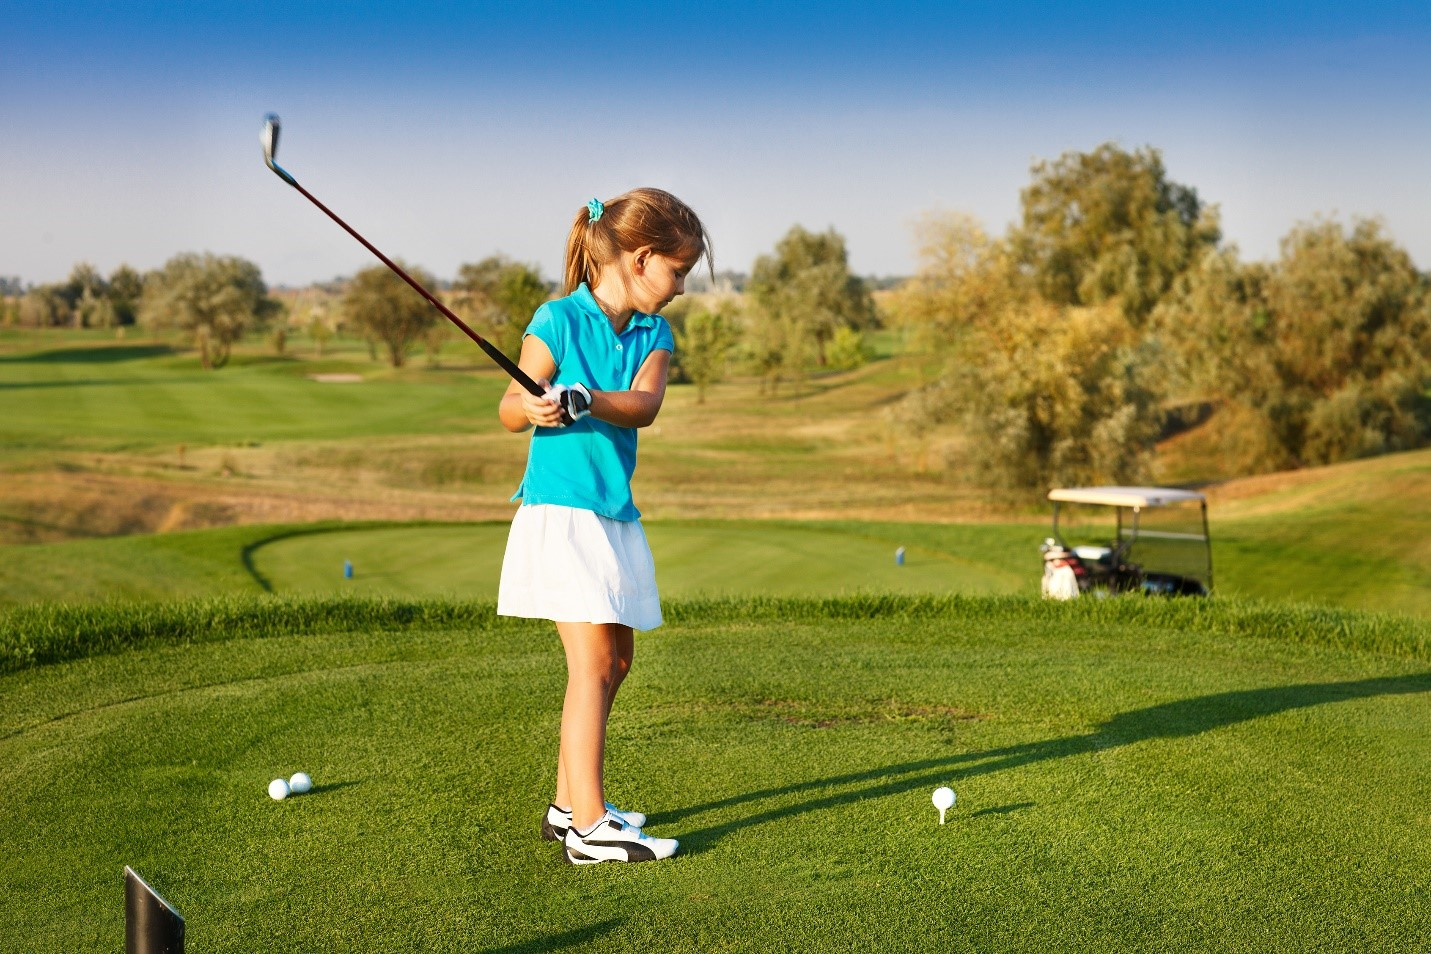 girl junior golfer practicing